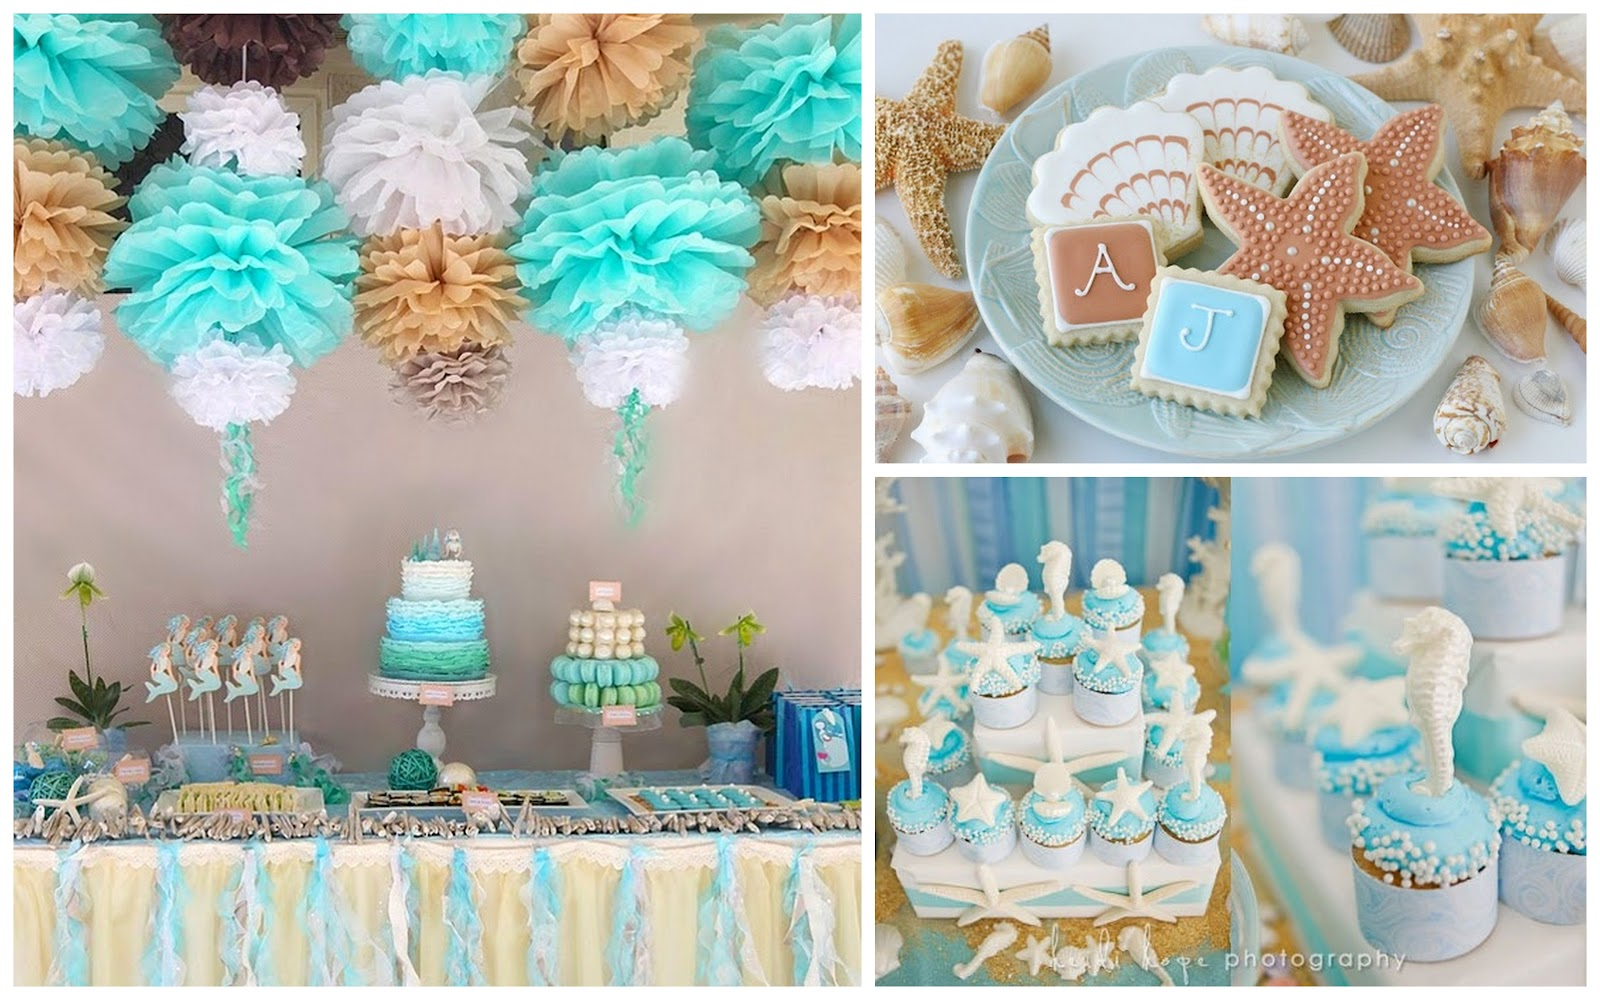 Party Decoration Ideas Beach Image Inspiration Of Cake And